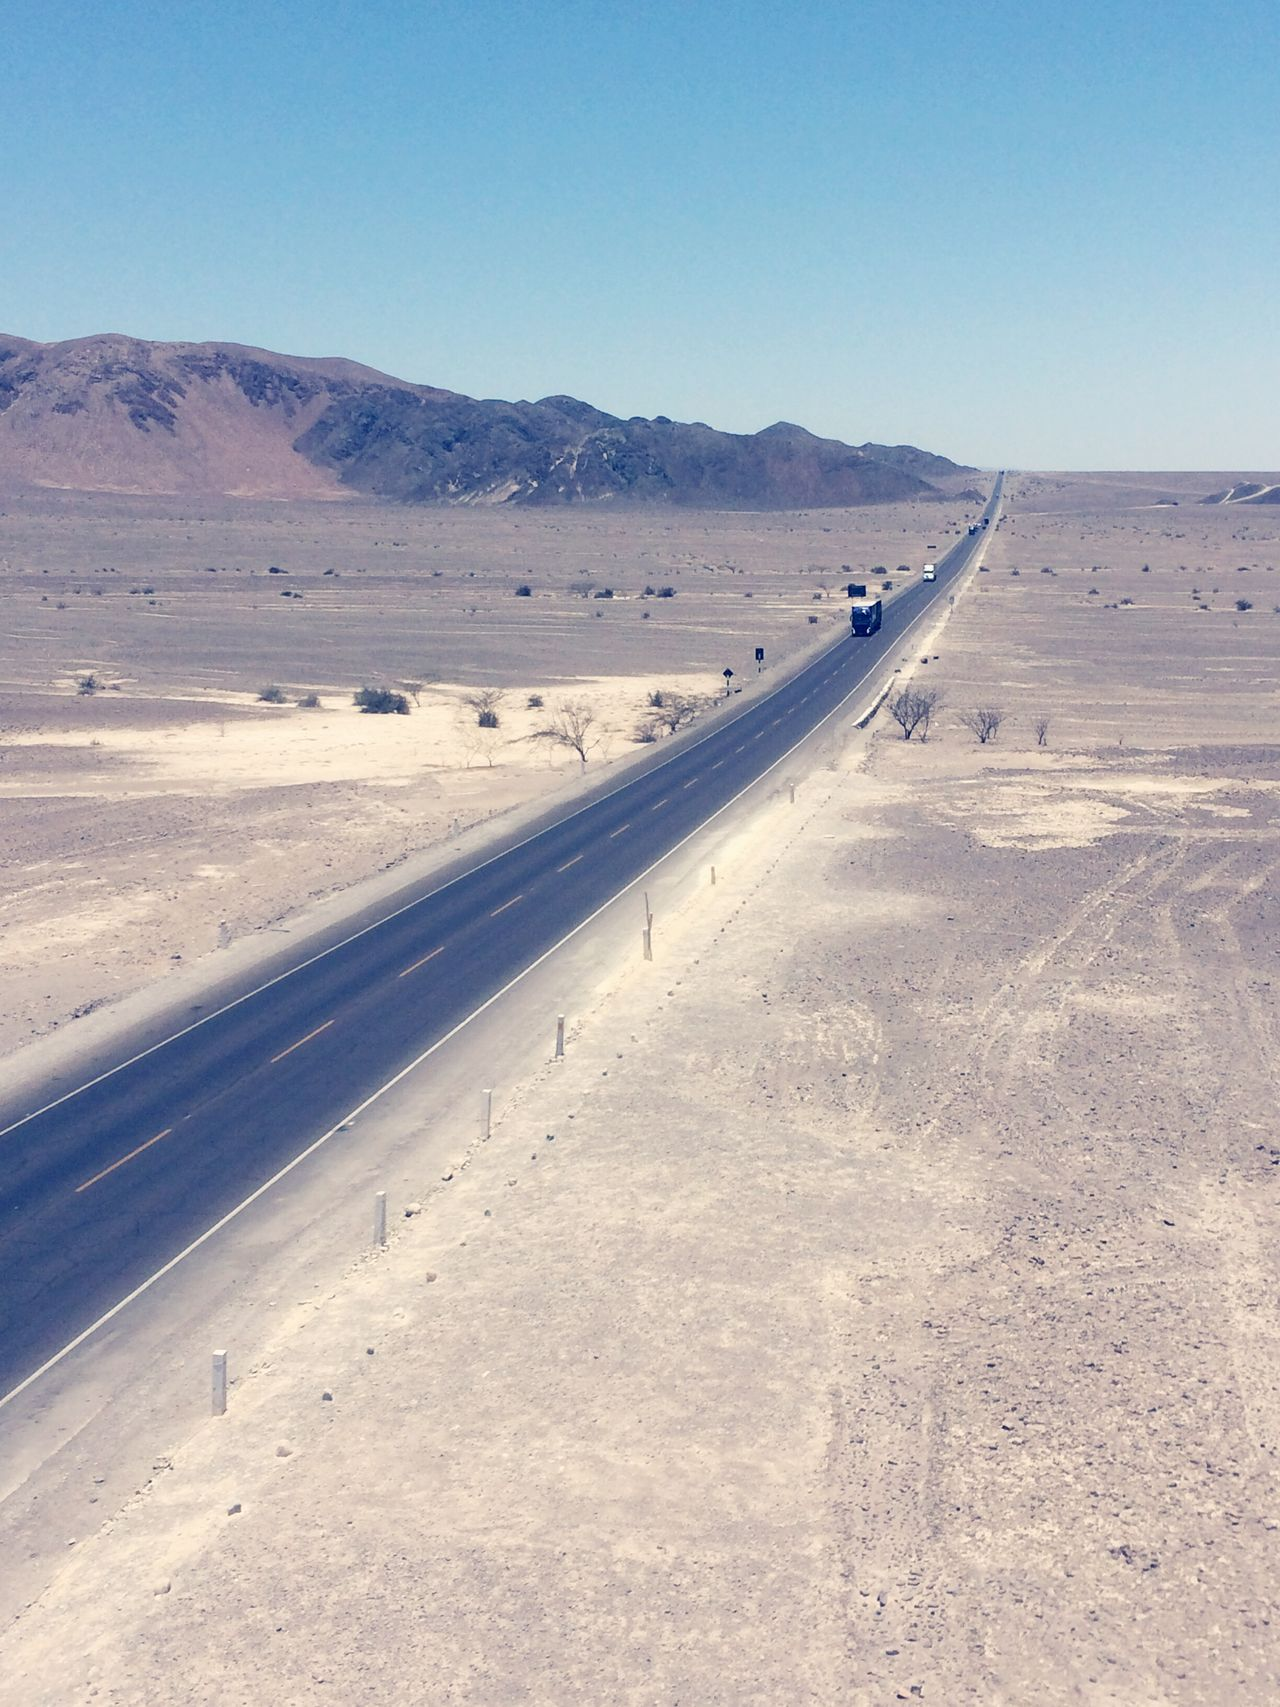 Peru Desert Panamerican Road Panamerican Highway Nazca Traveling Travel Road Roadtrip